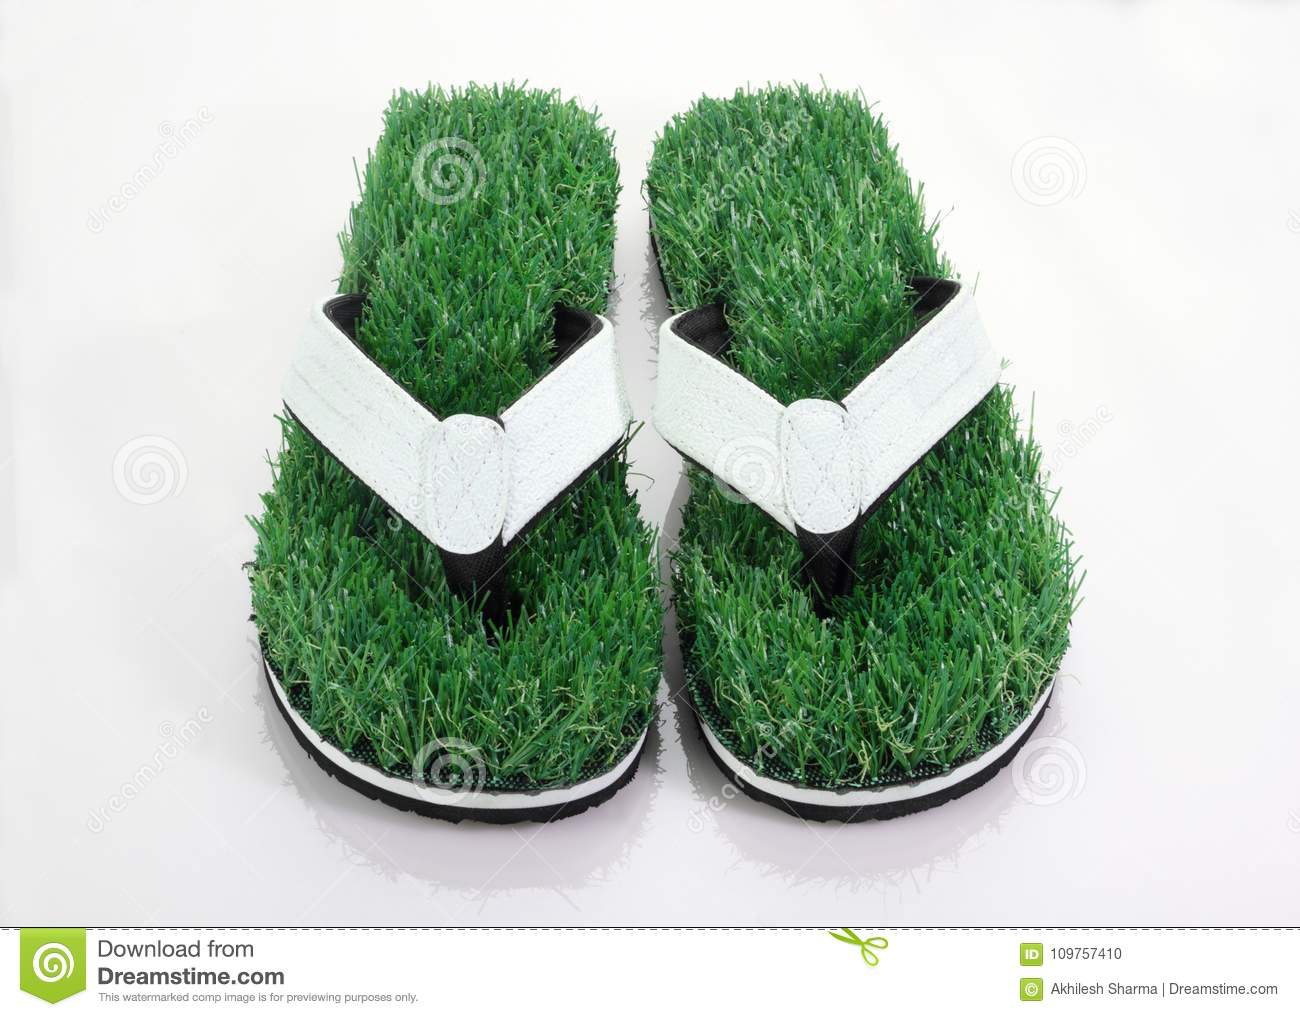 92aba6ccf Flip-Flop Slipper With Green Grass Comfort Concept Stock Photo ...